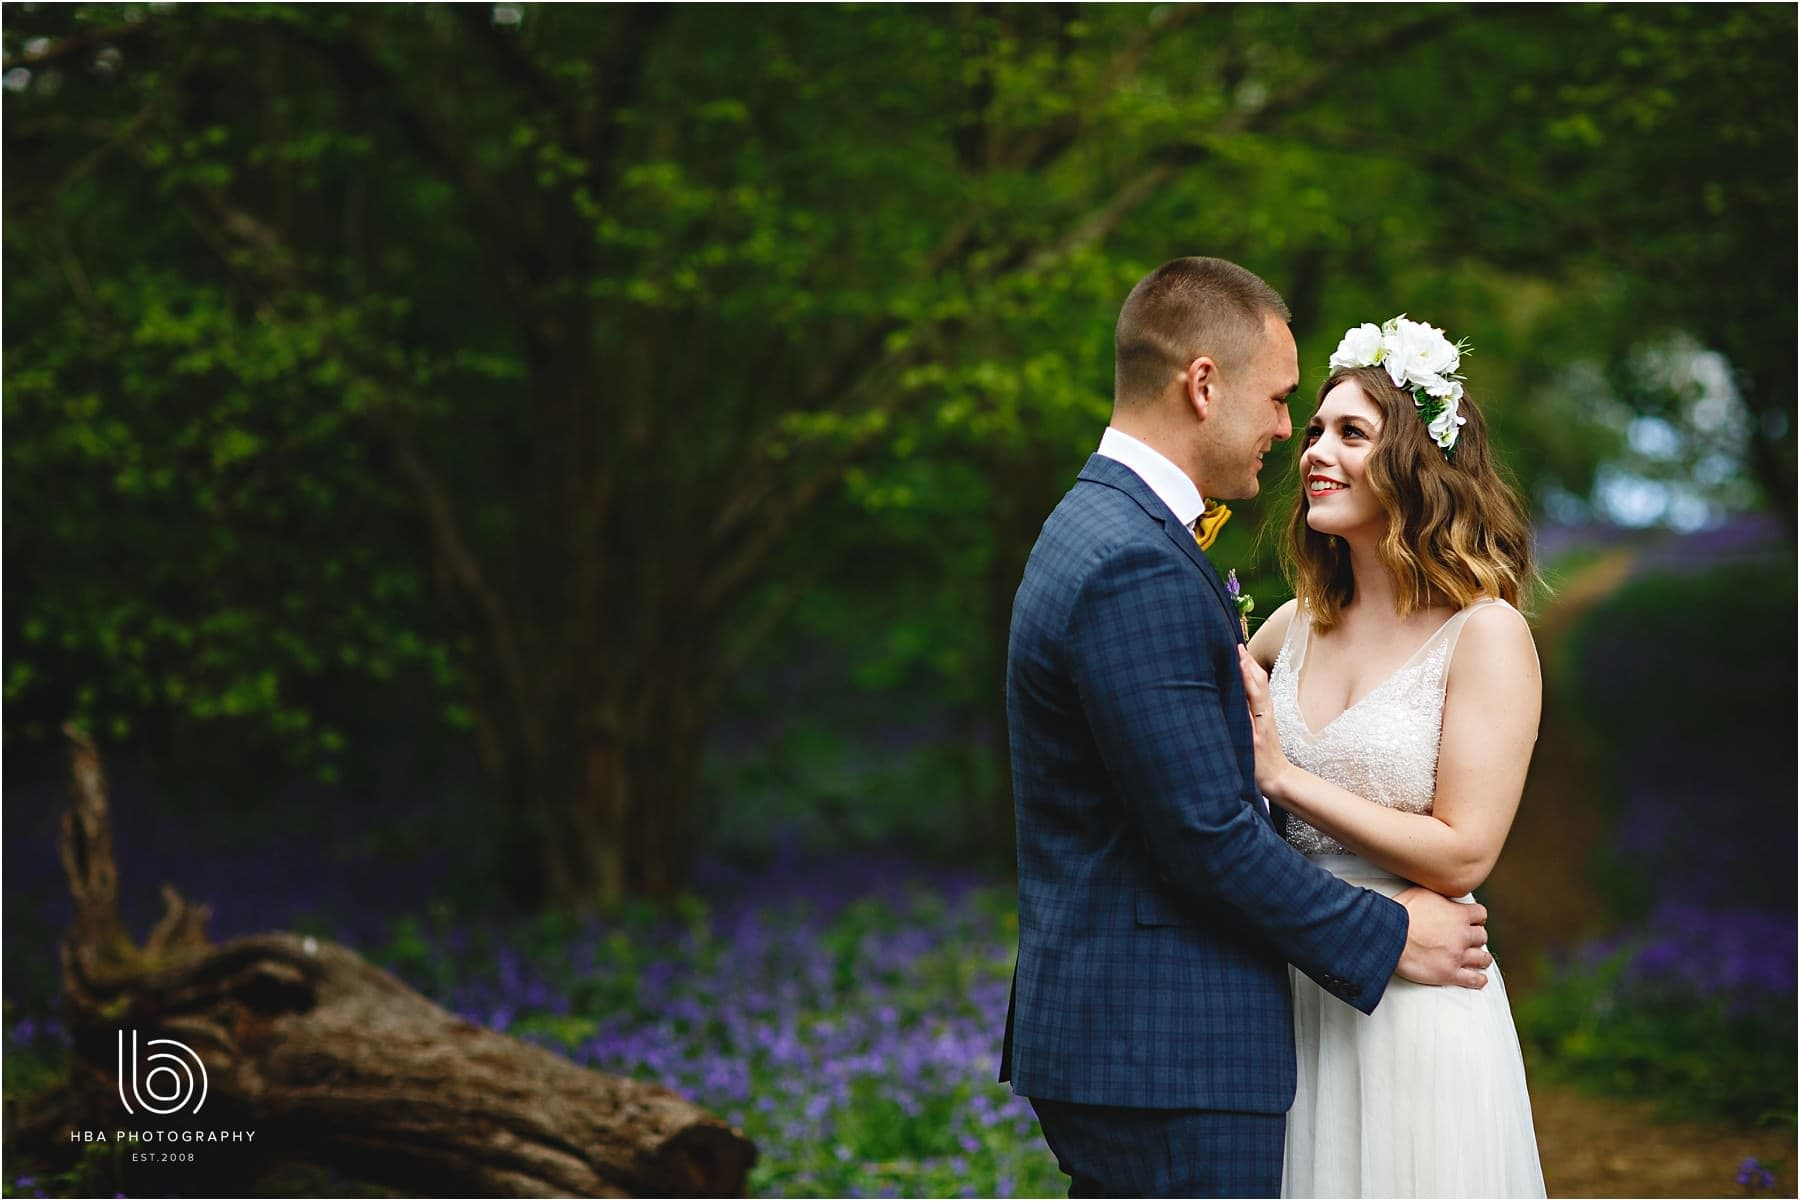 the brid eand groom together in the woods